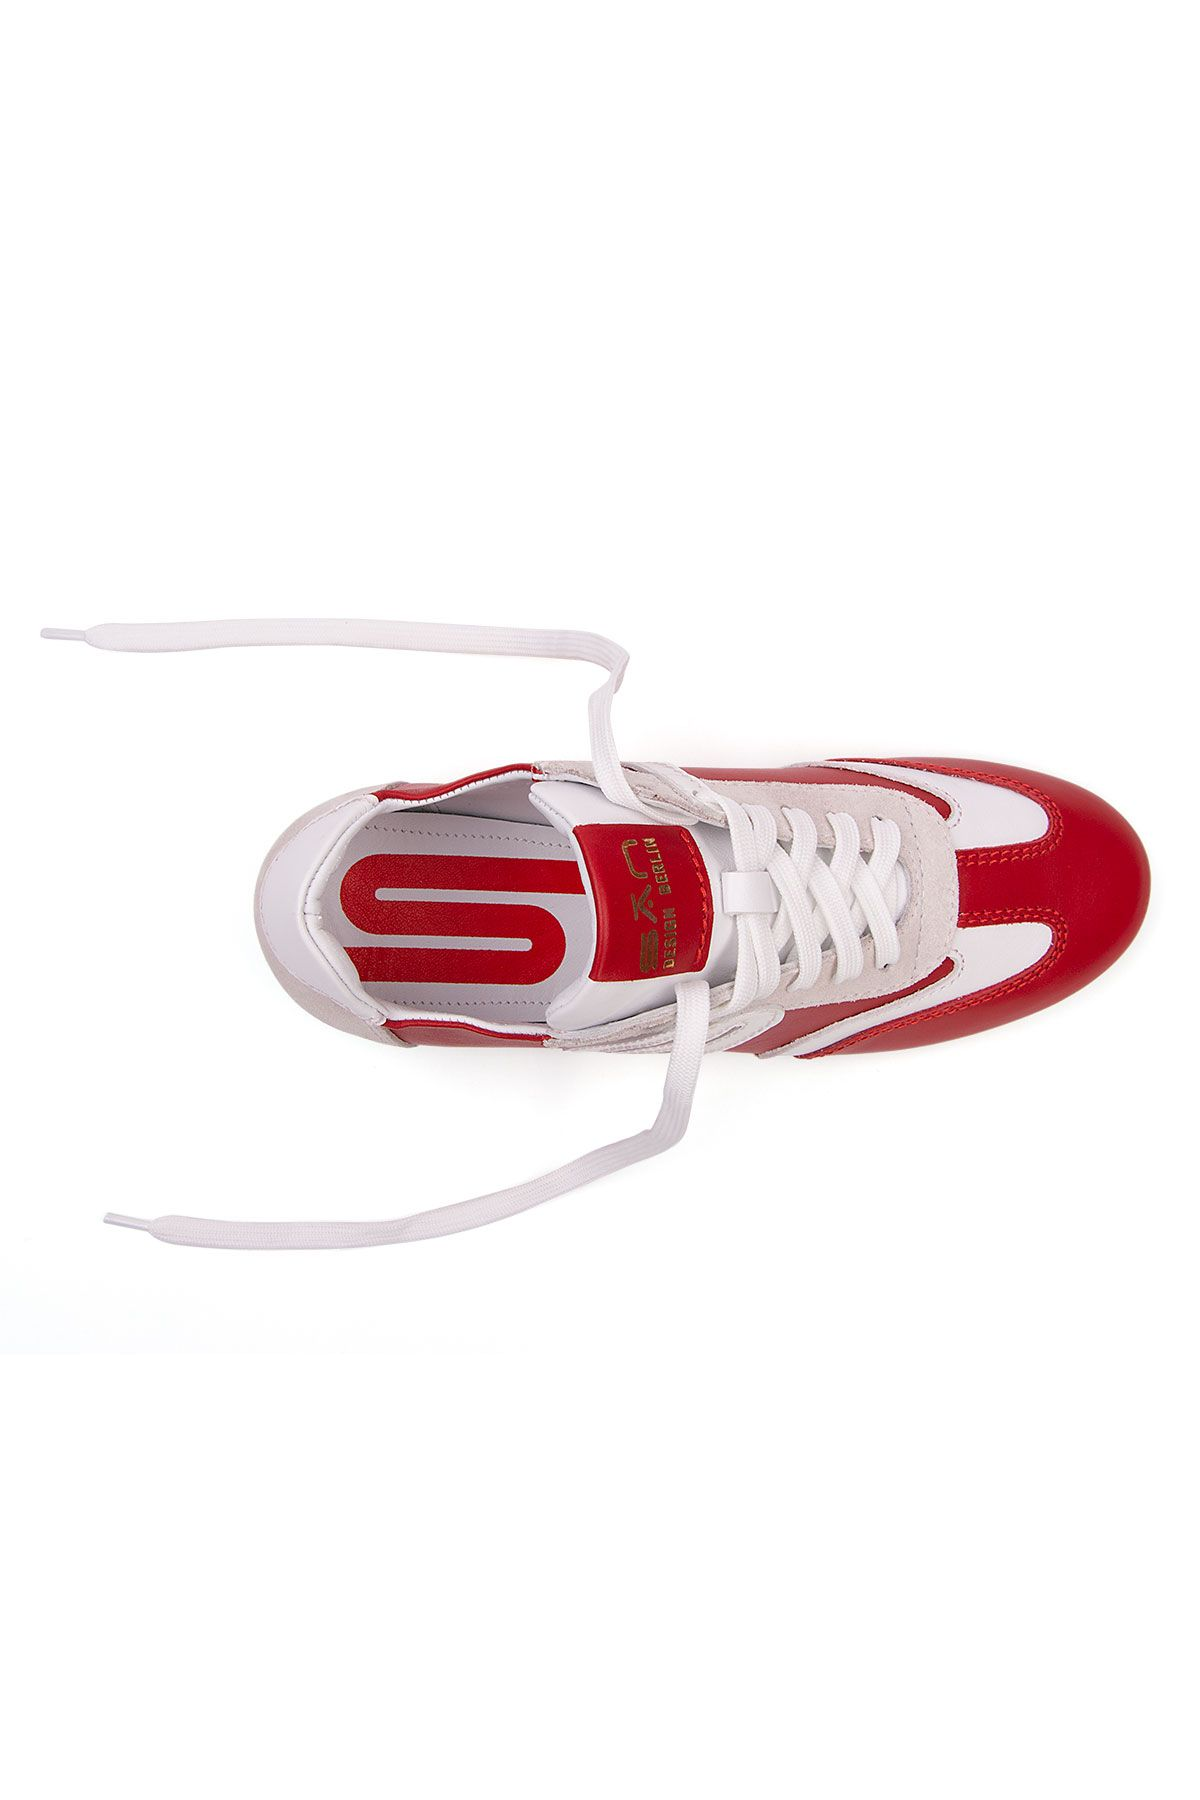 San Women's Leather Sneakers SAN04S Red